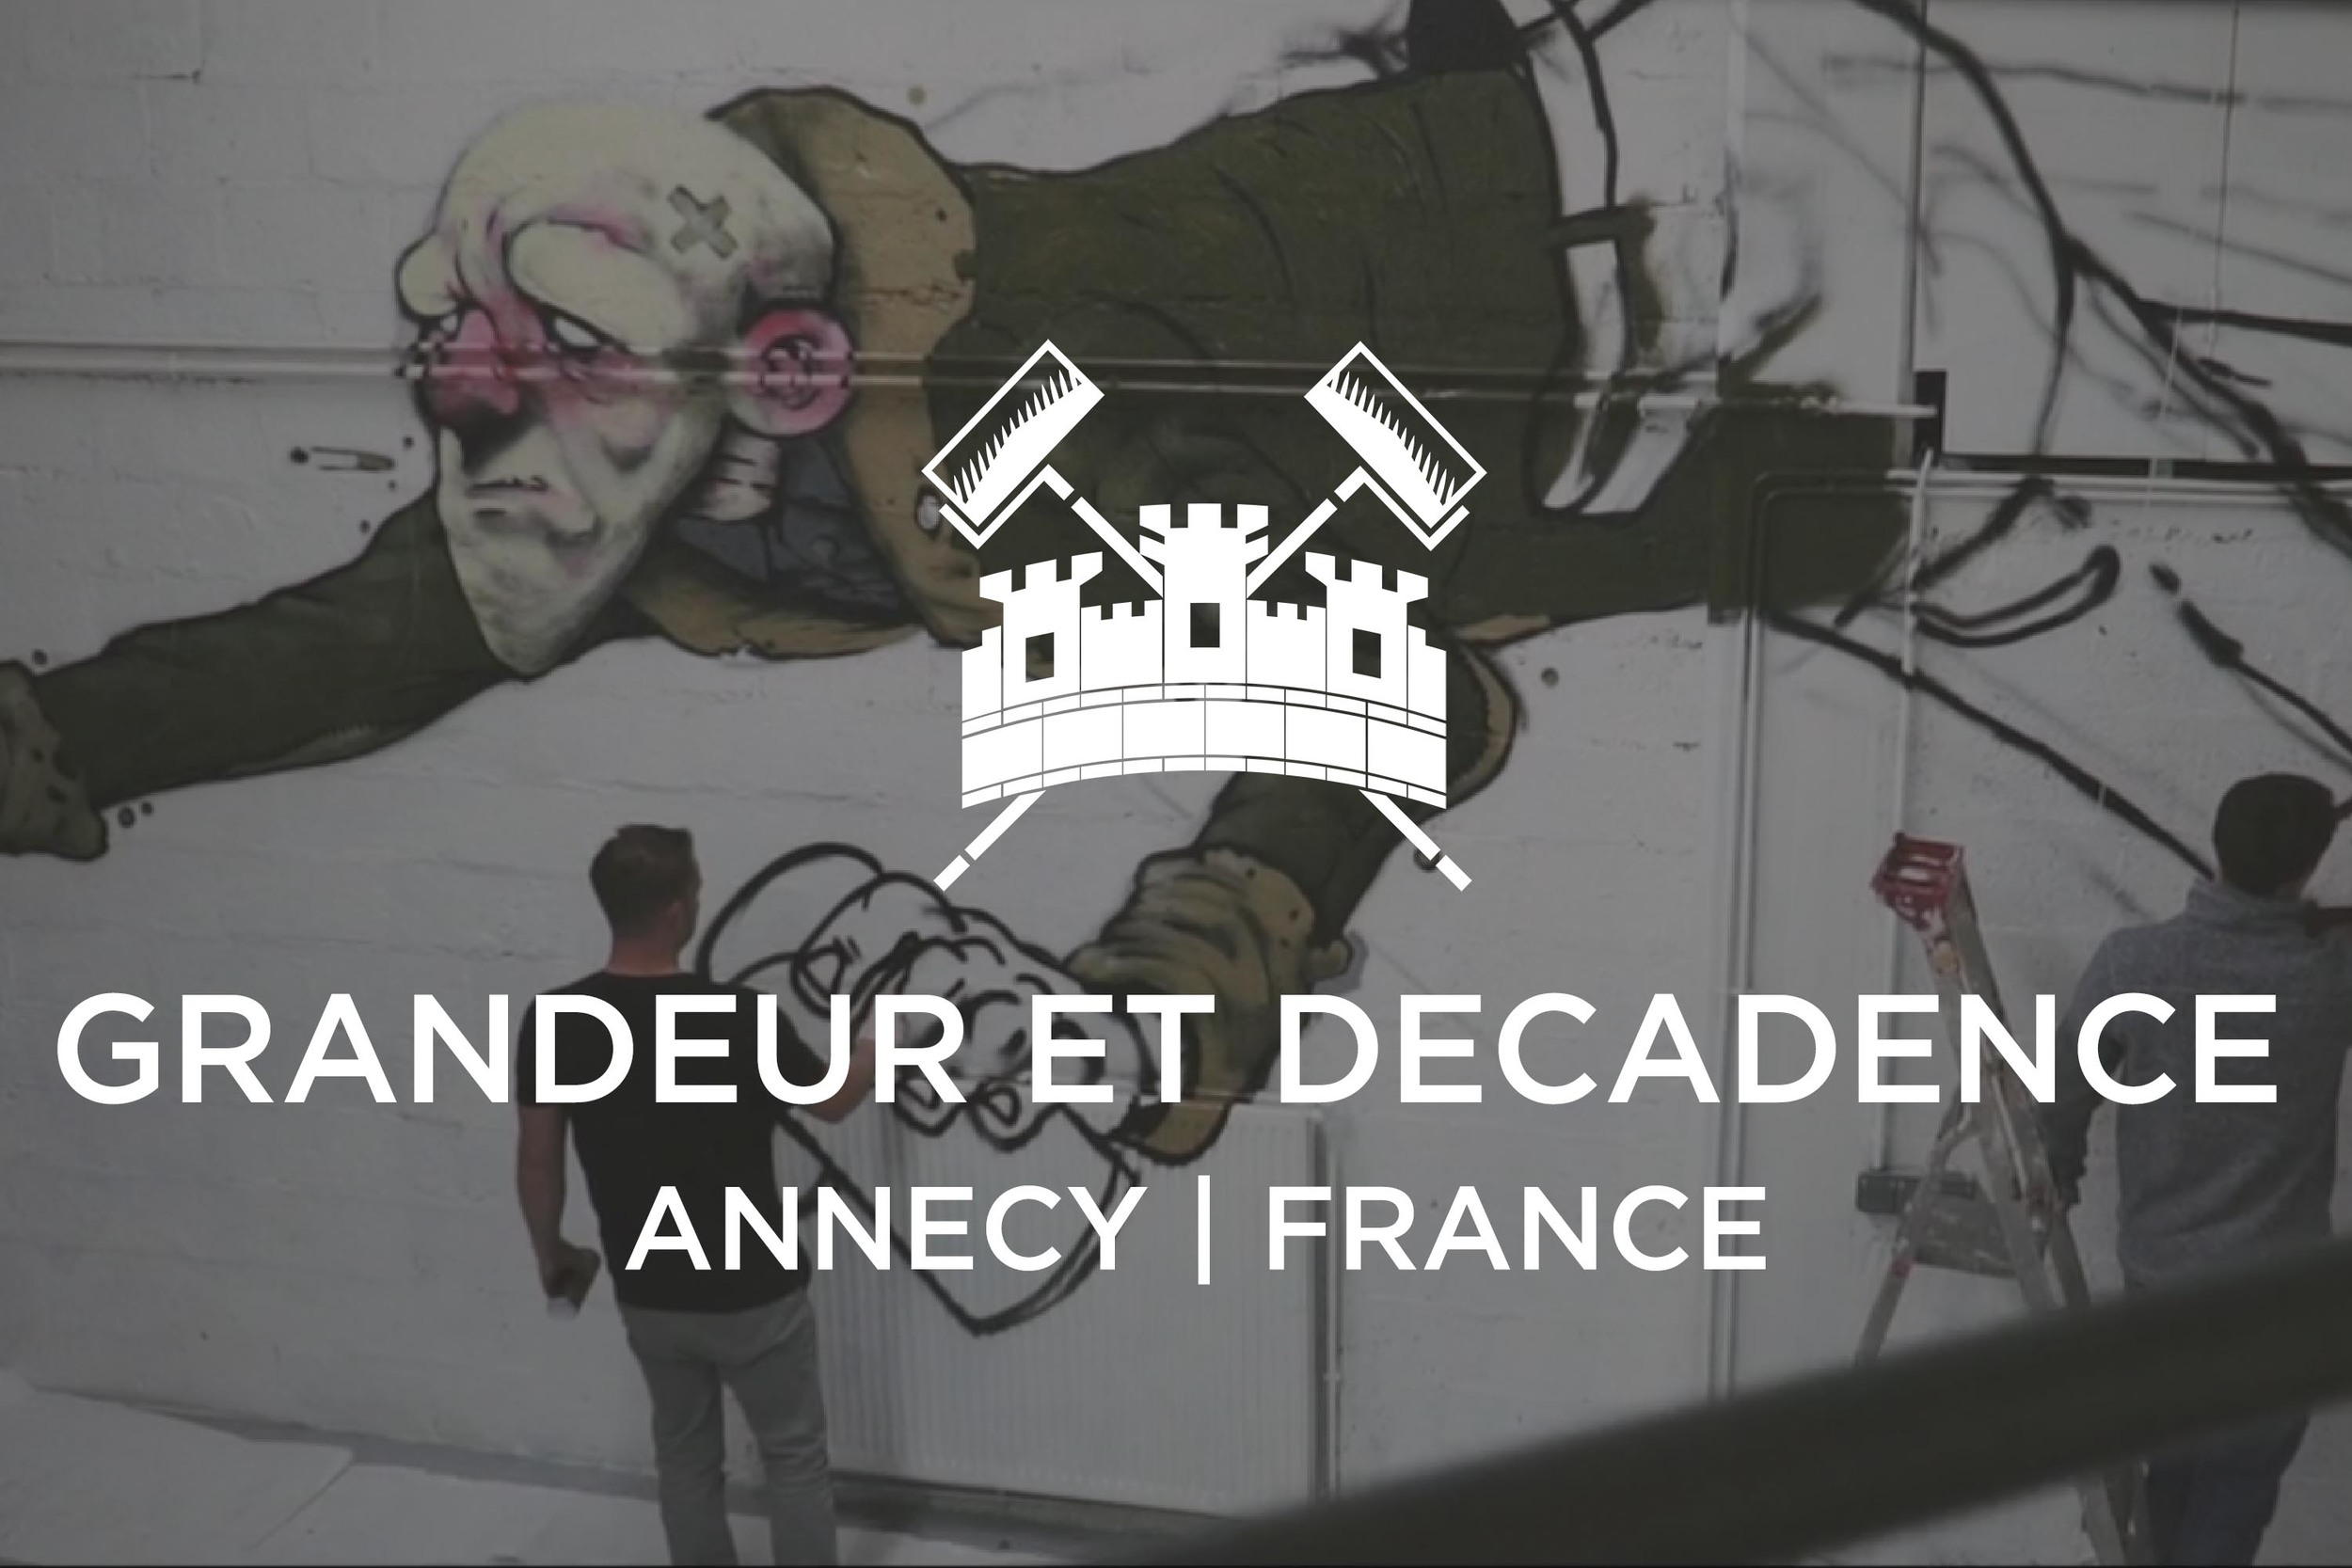 THE LONDON MURAL COMPANY X ANNECY